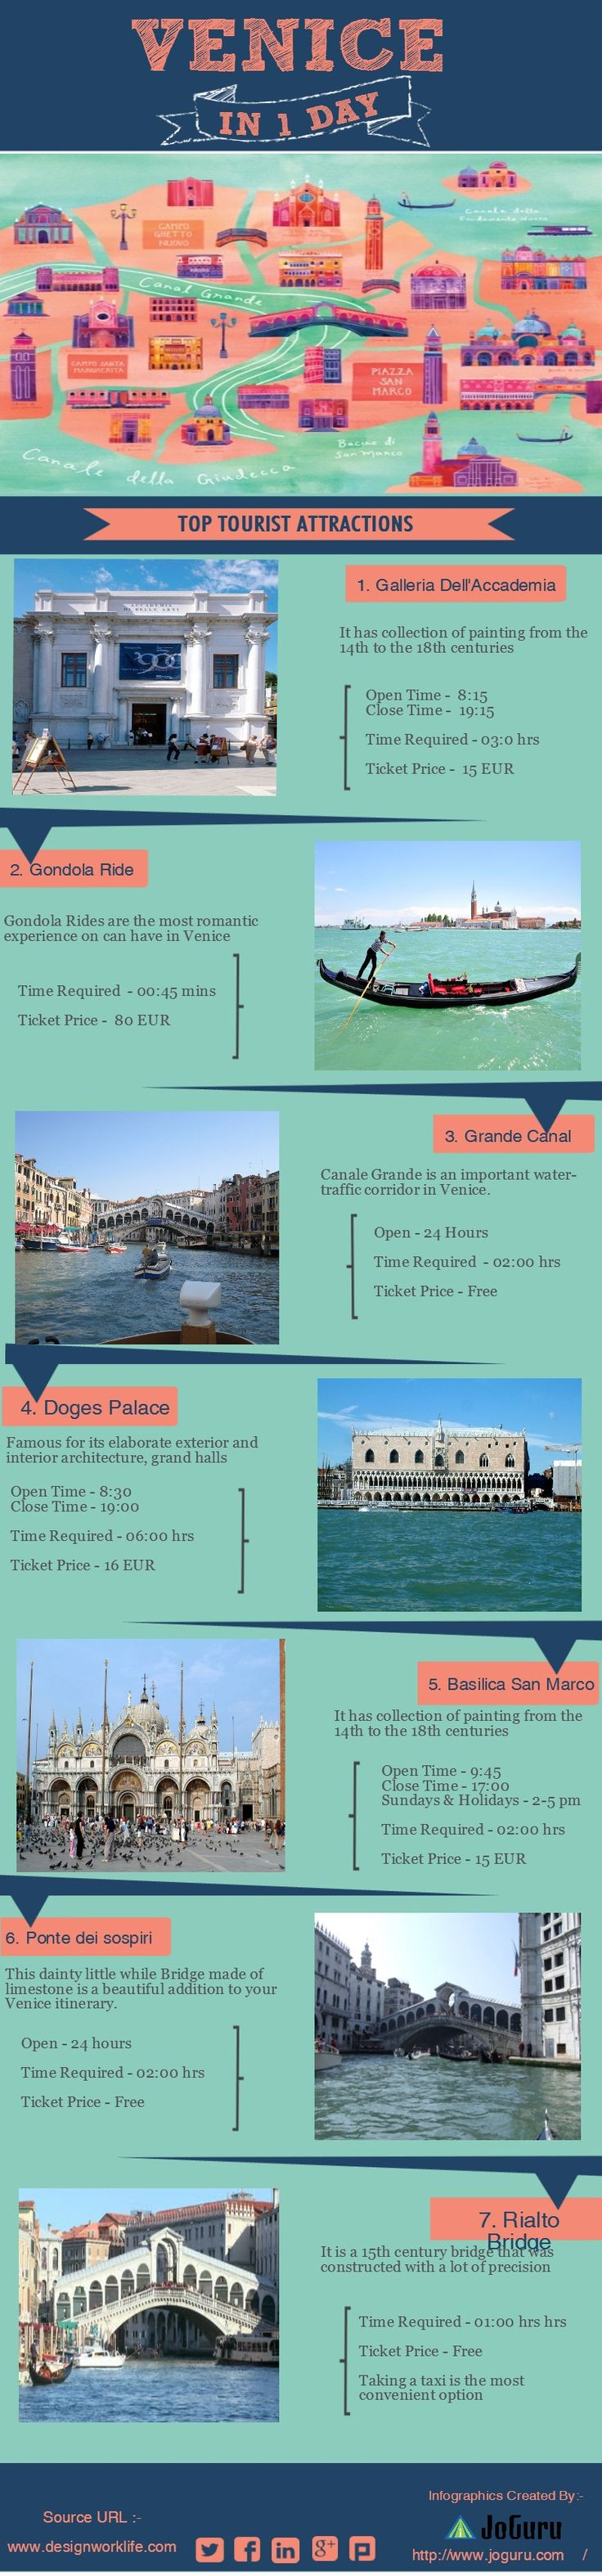 #Daycation - One day trip itinerary to Venice, Italy